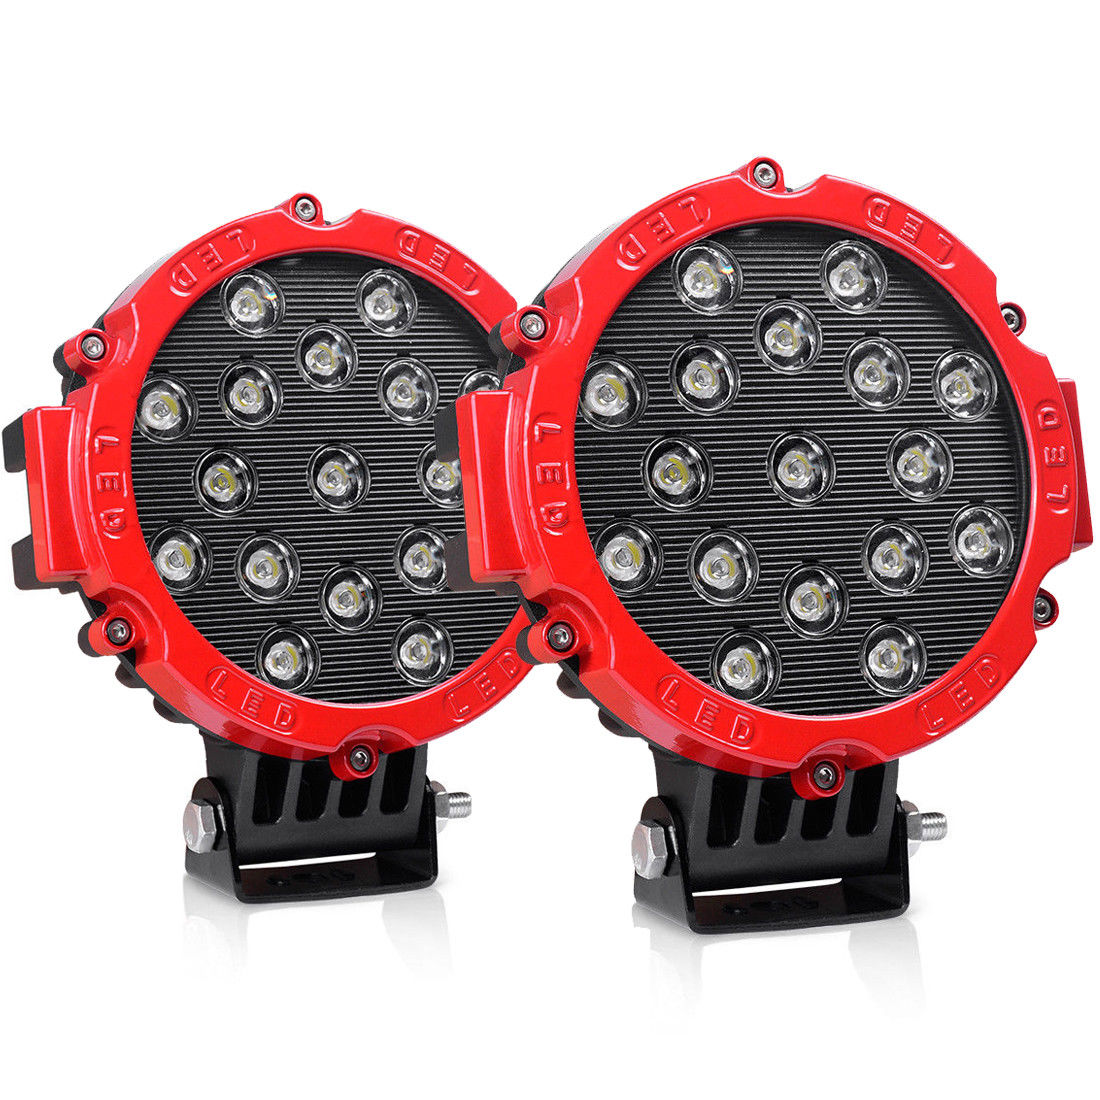 "LED Lights Bar 2Pcs 7"" 51W Spot Round Off Road Fog lights with Mounting Bracket For SUV Boat Jeep Lamp,2 Years Warranty(Red)"